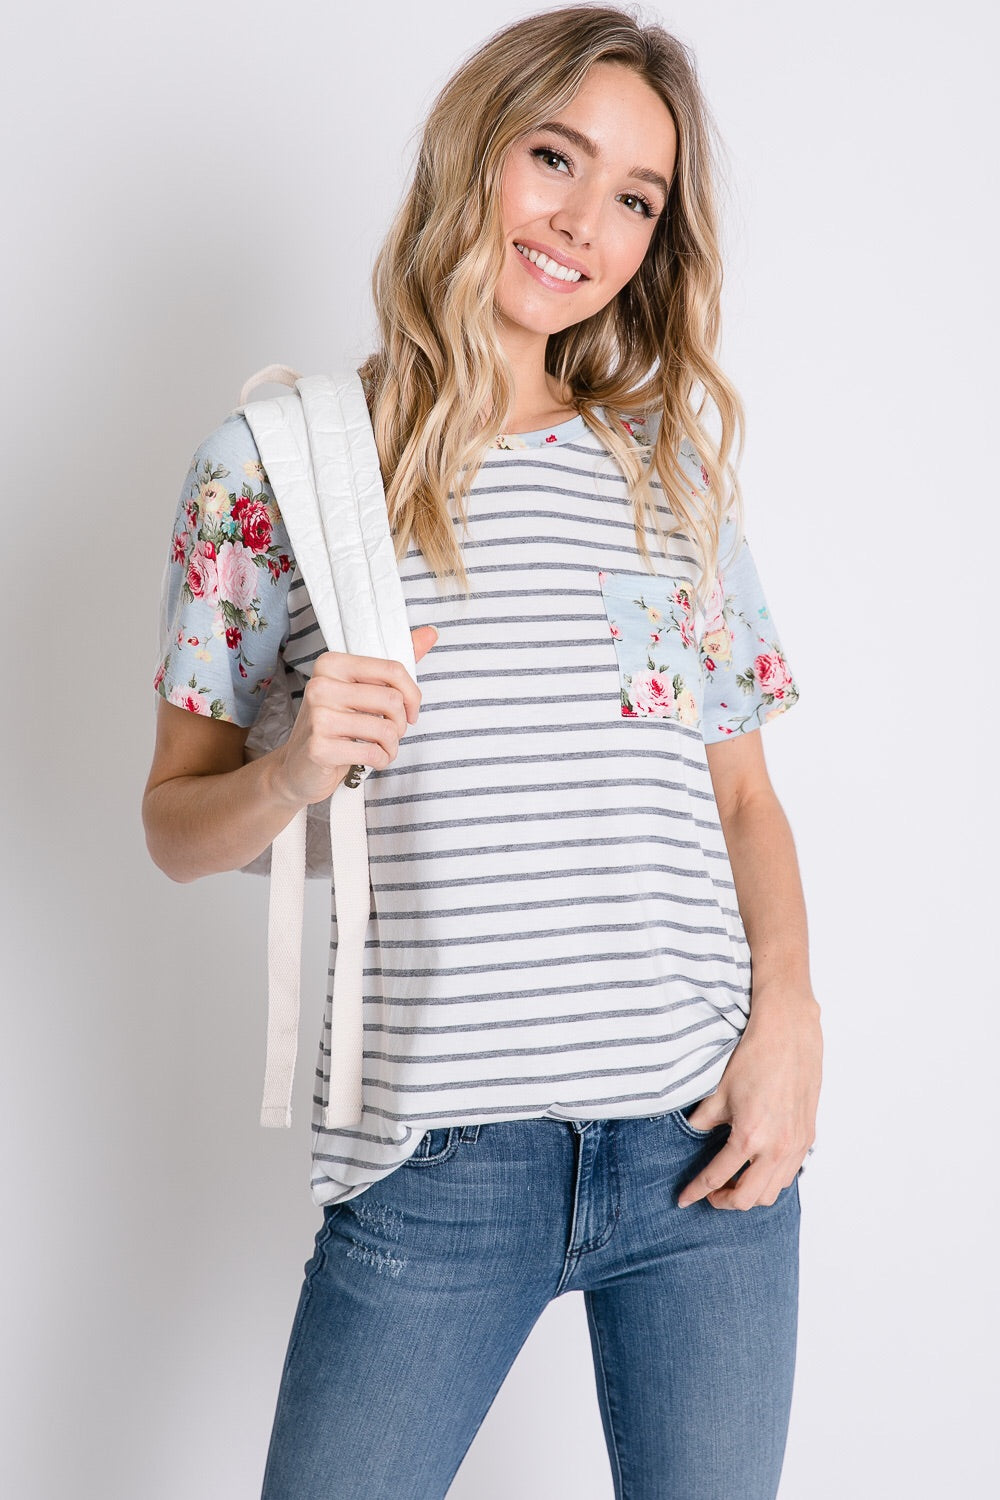 CAREFREE TOP, LIGHT BLUE